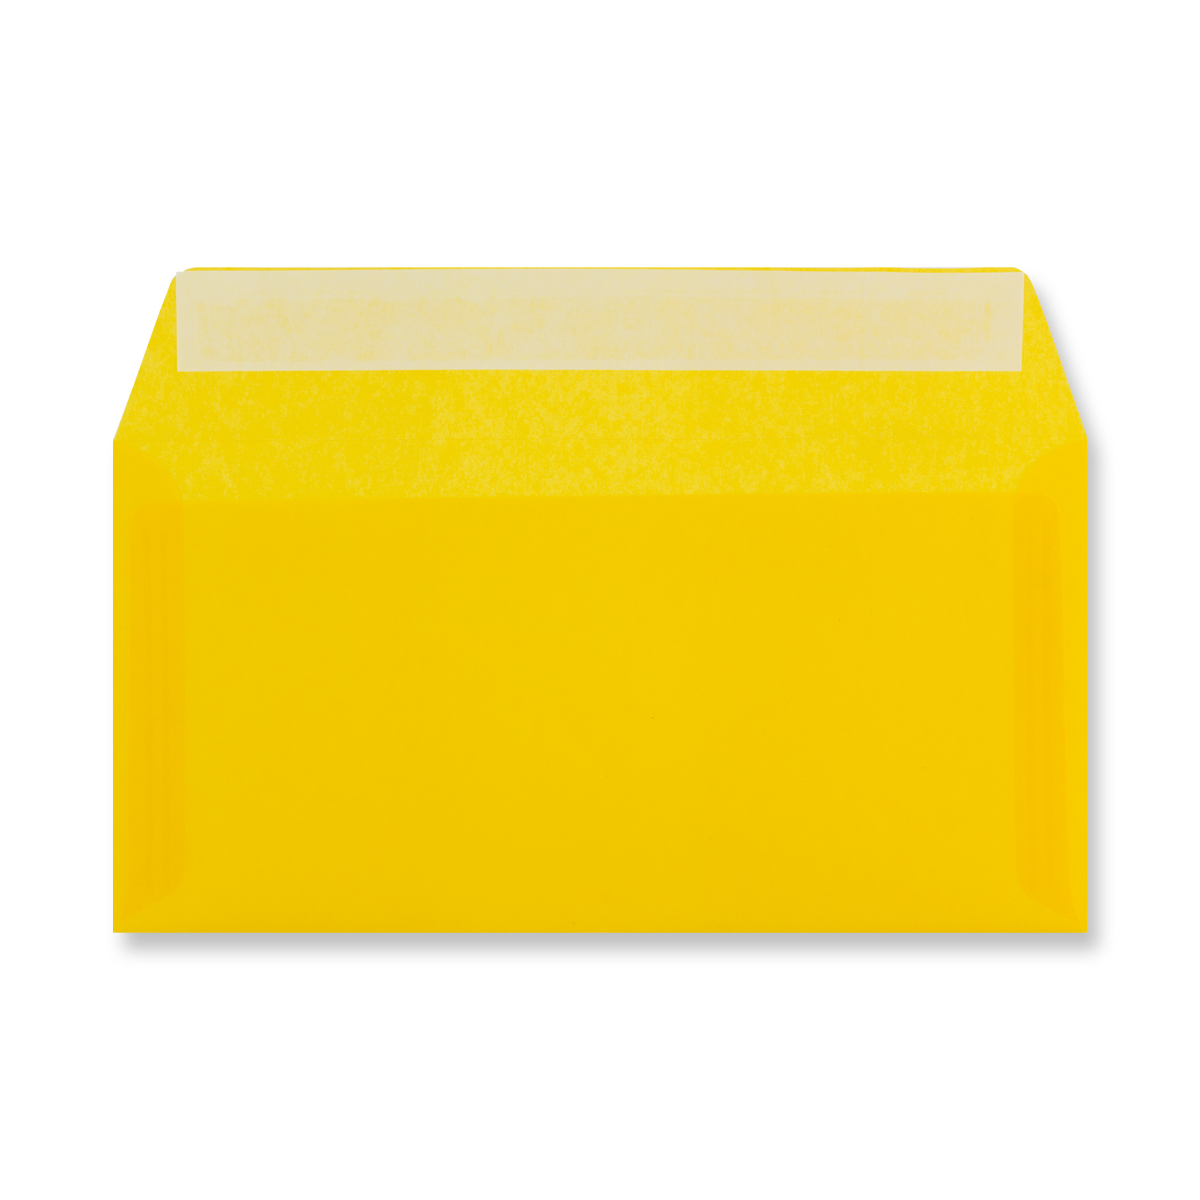 DL YELLOW TRANSLUCENT ENVELOPES